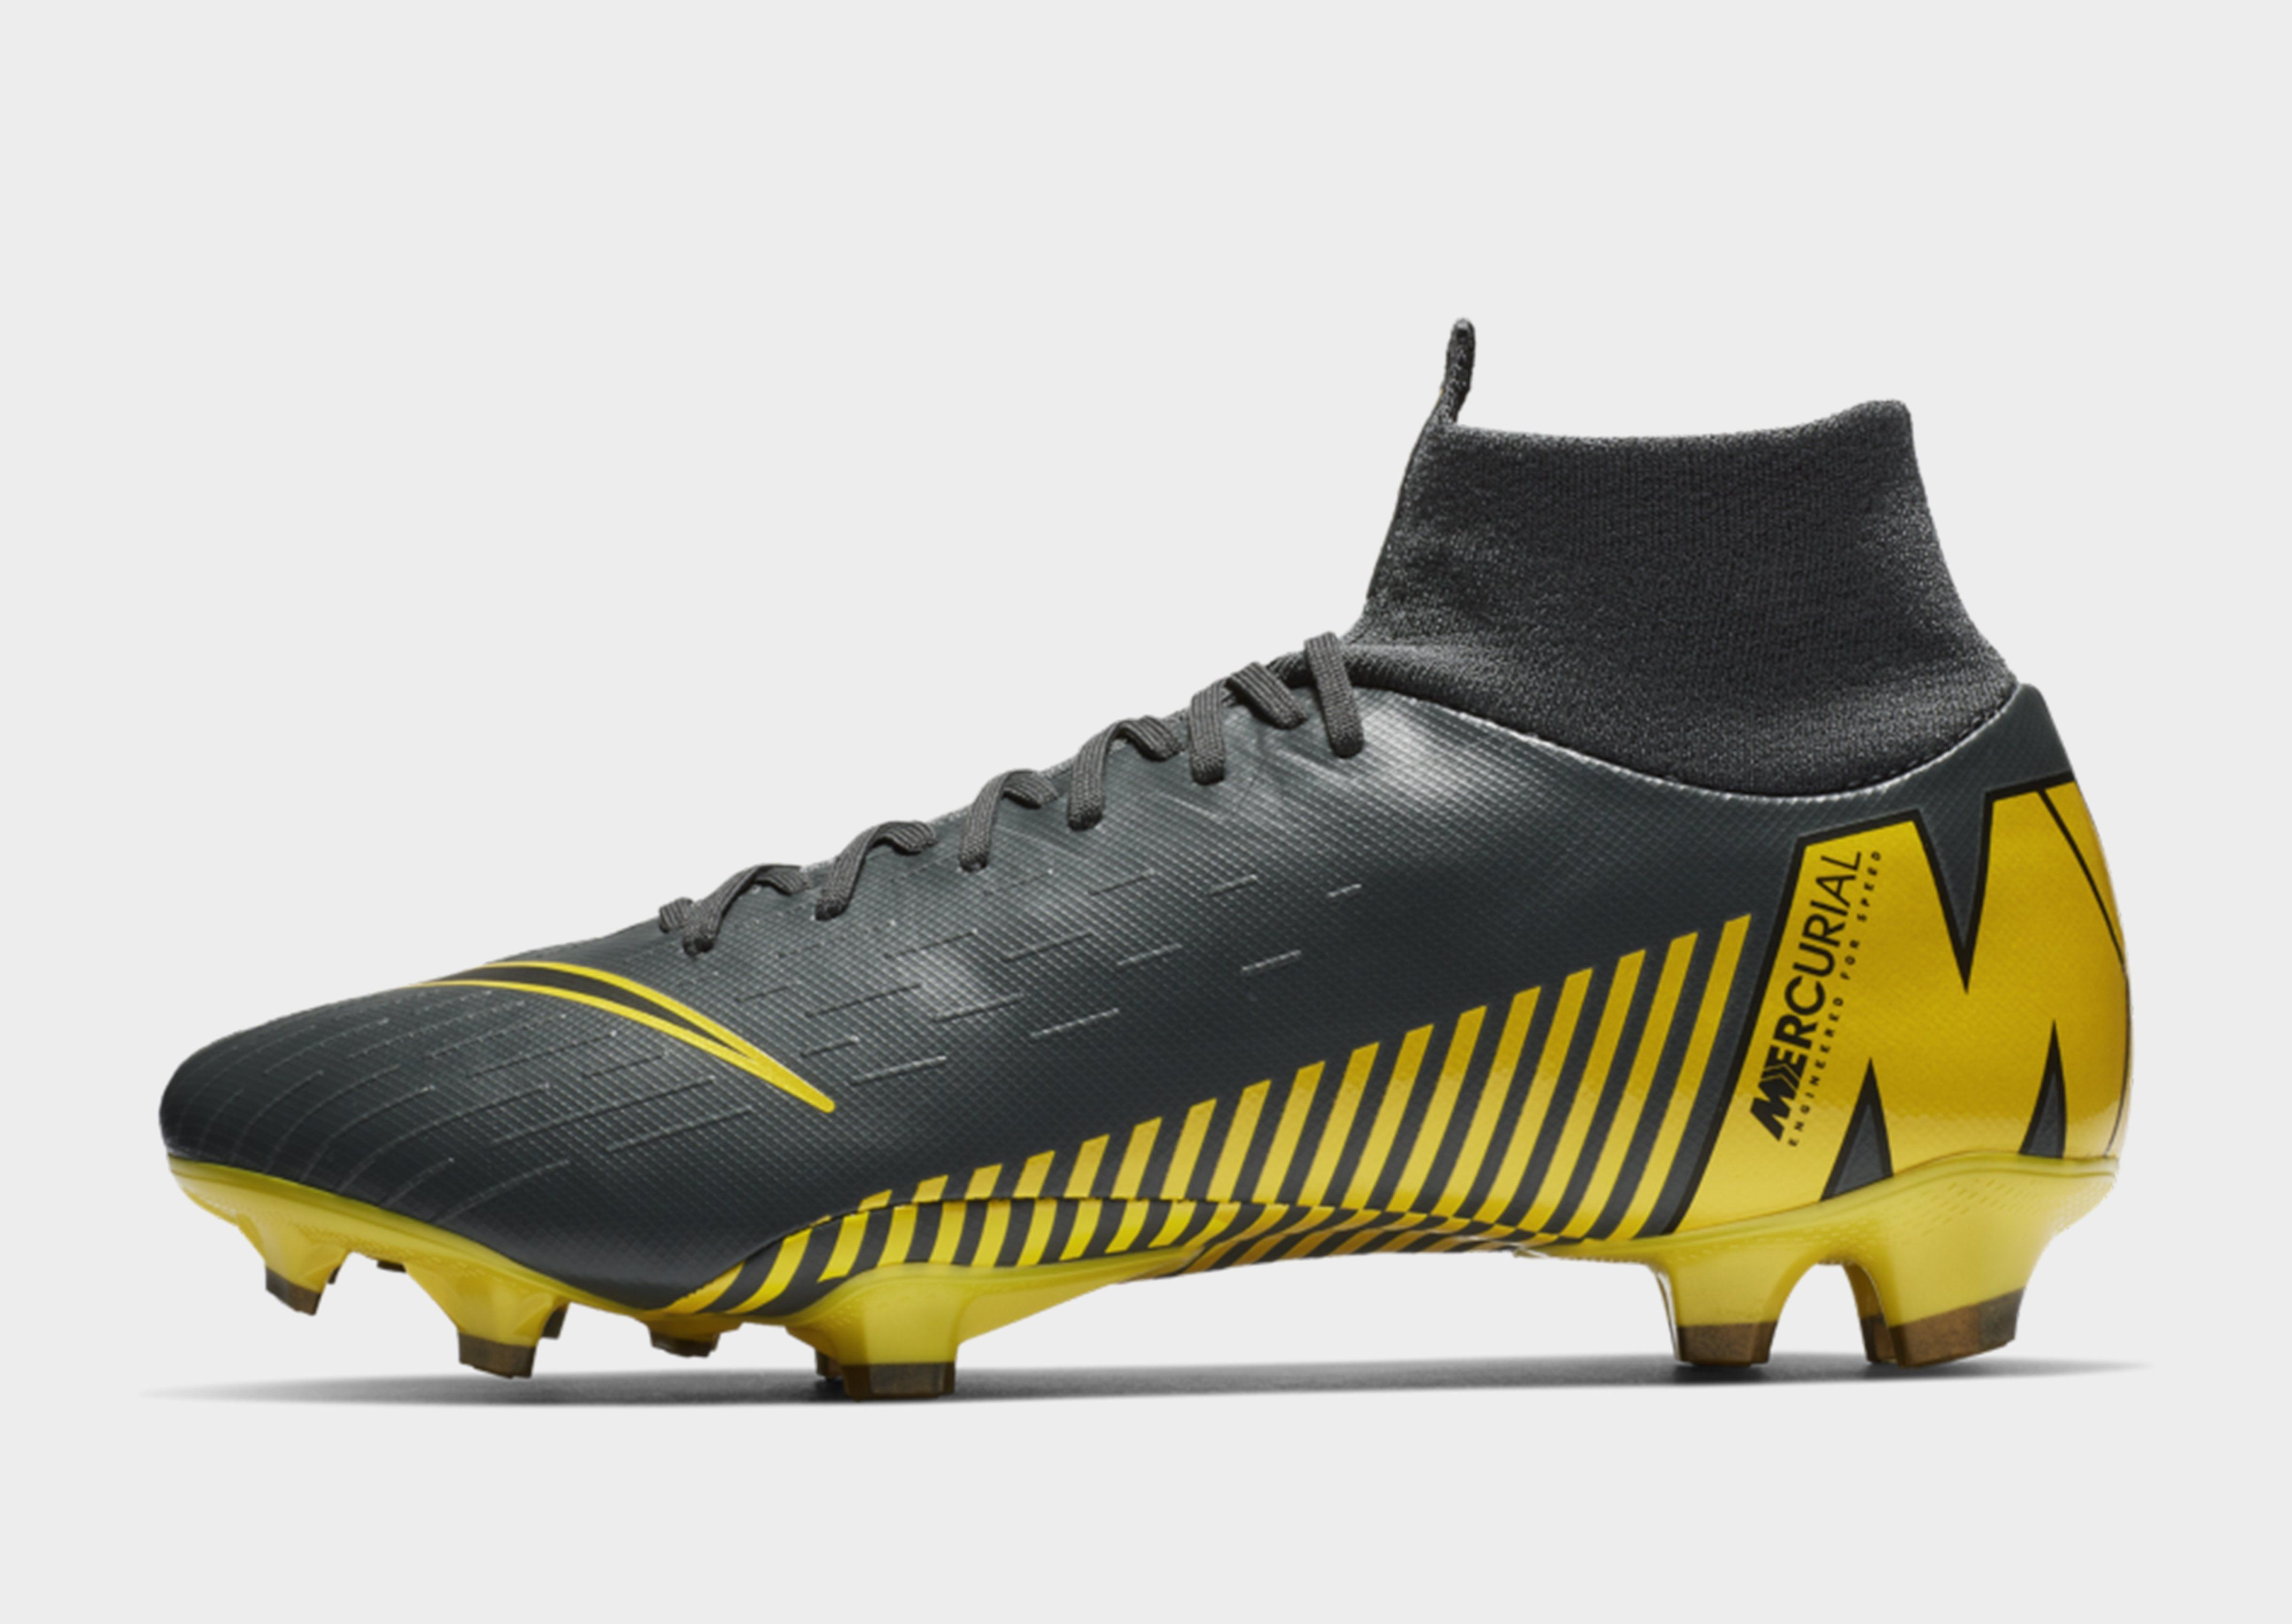 3c153cab5be4 NIKE Nike Superfly 6 Pro FG Firm-Ground Football Boot